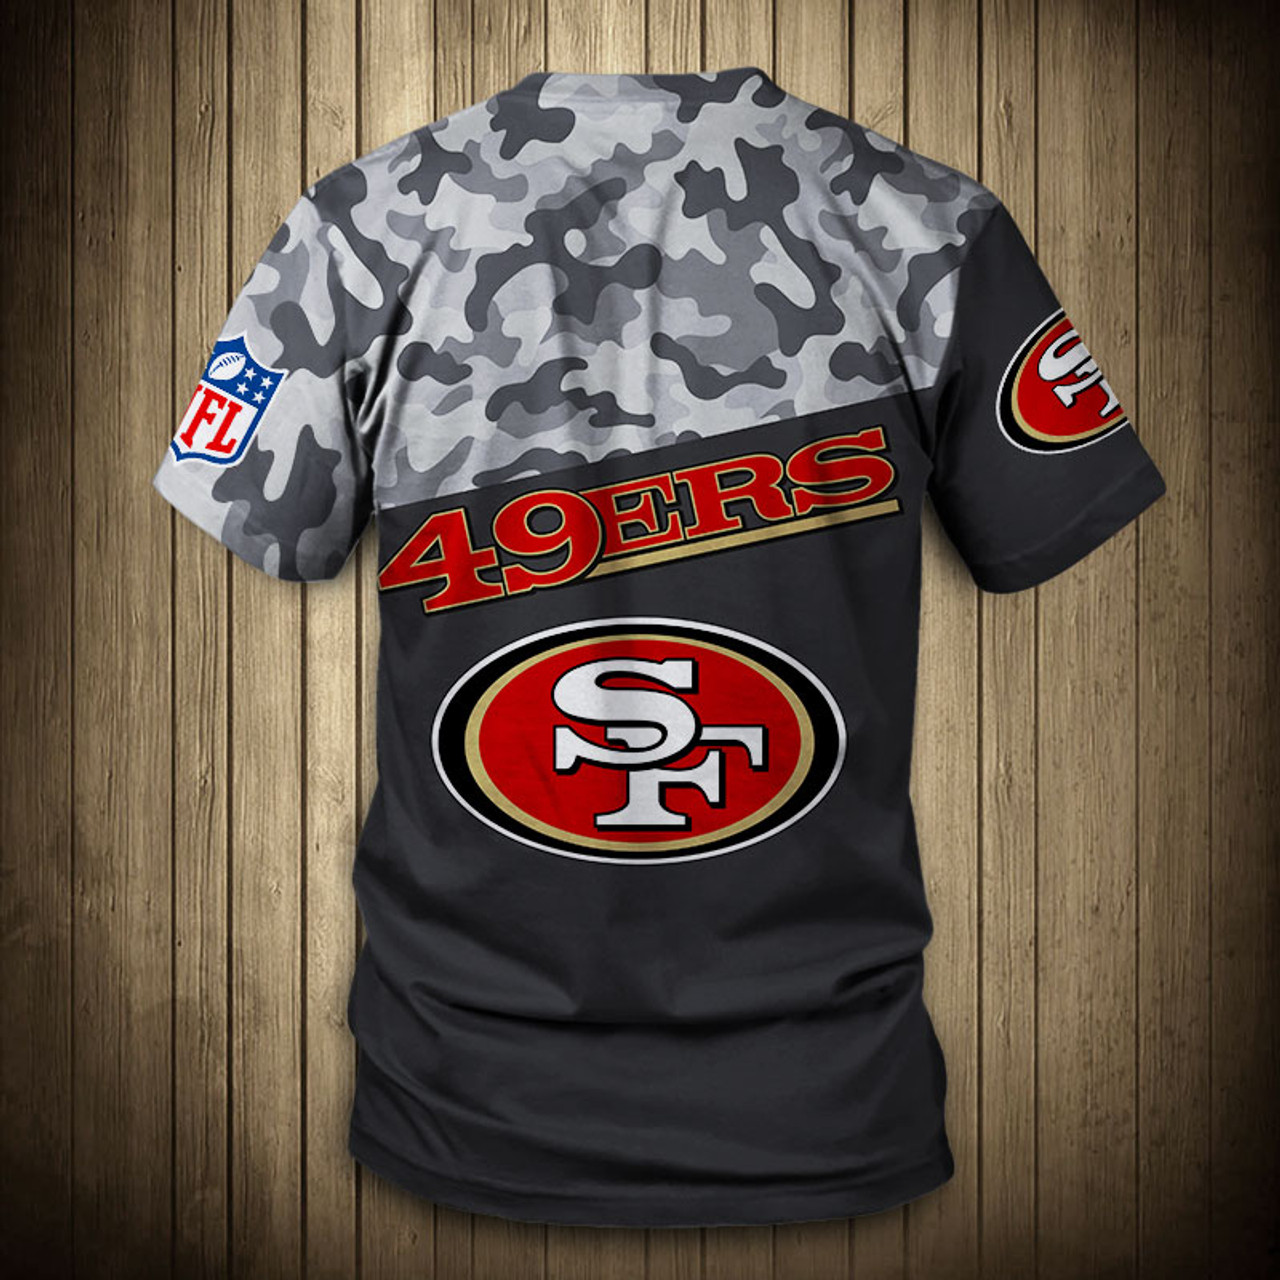 **(OFFICIAL-N.F.L.SAN-FRANCISCO-49ERS-CAMO.DESIGN-TEAM-TEES/CUSTOM-3D-49ERS-OFFICIAL-LOGOS & OFFICIAL-49ERS-TEAM-COLORS/NICE-3D-DETAILED-GRAPHIC-PRINTED-DOUBLE-SIDED/ALL-OVER-FRONT & BACK-GRAPHIC-PRINTED-DESIGN/PREMIUM-N.F.L.49ERS-CAMO.TEAM-TEES)**